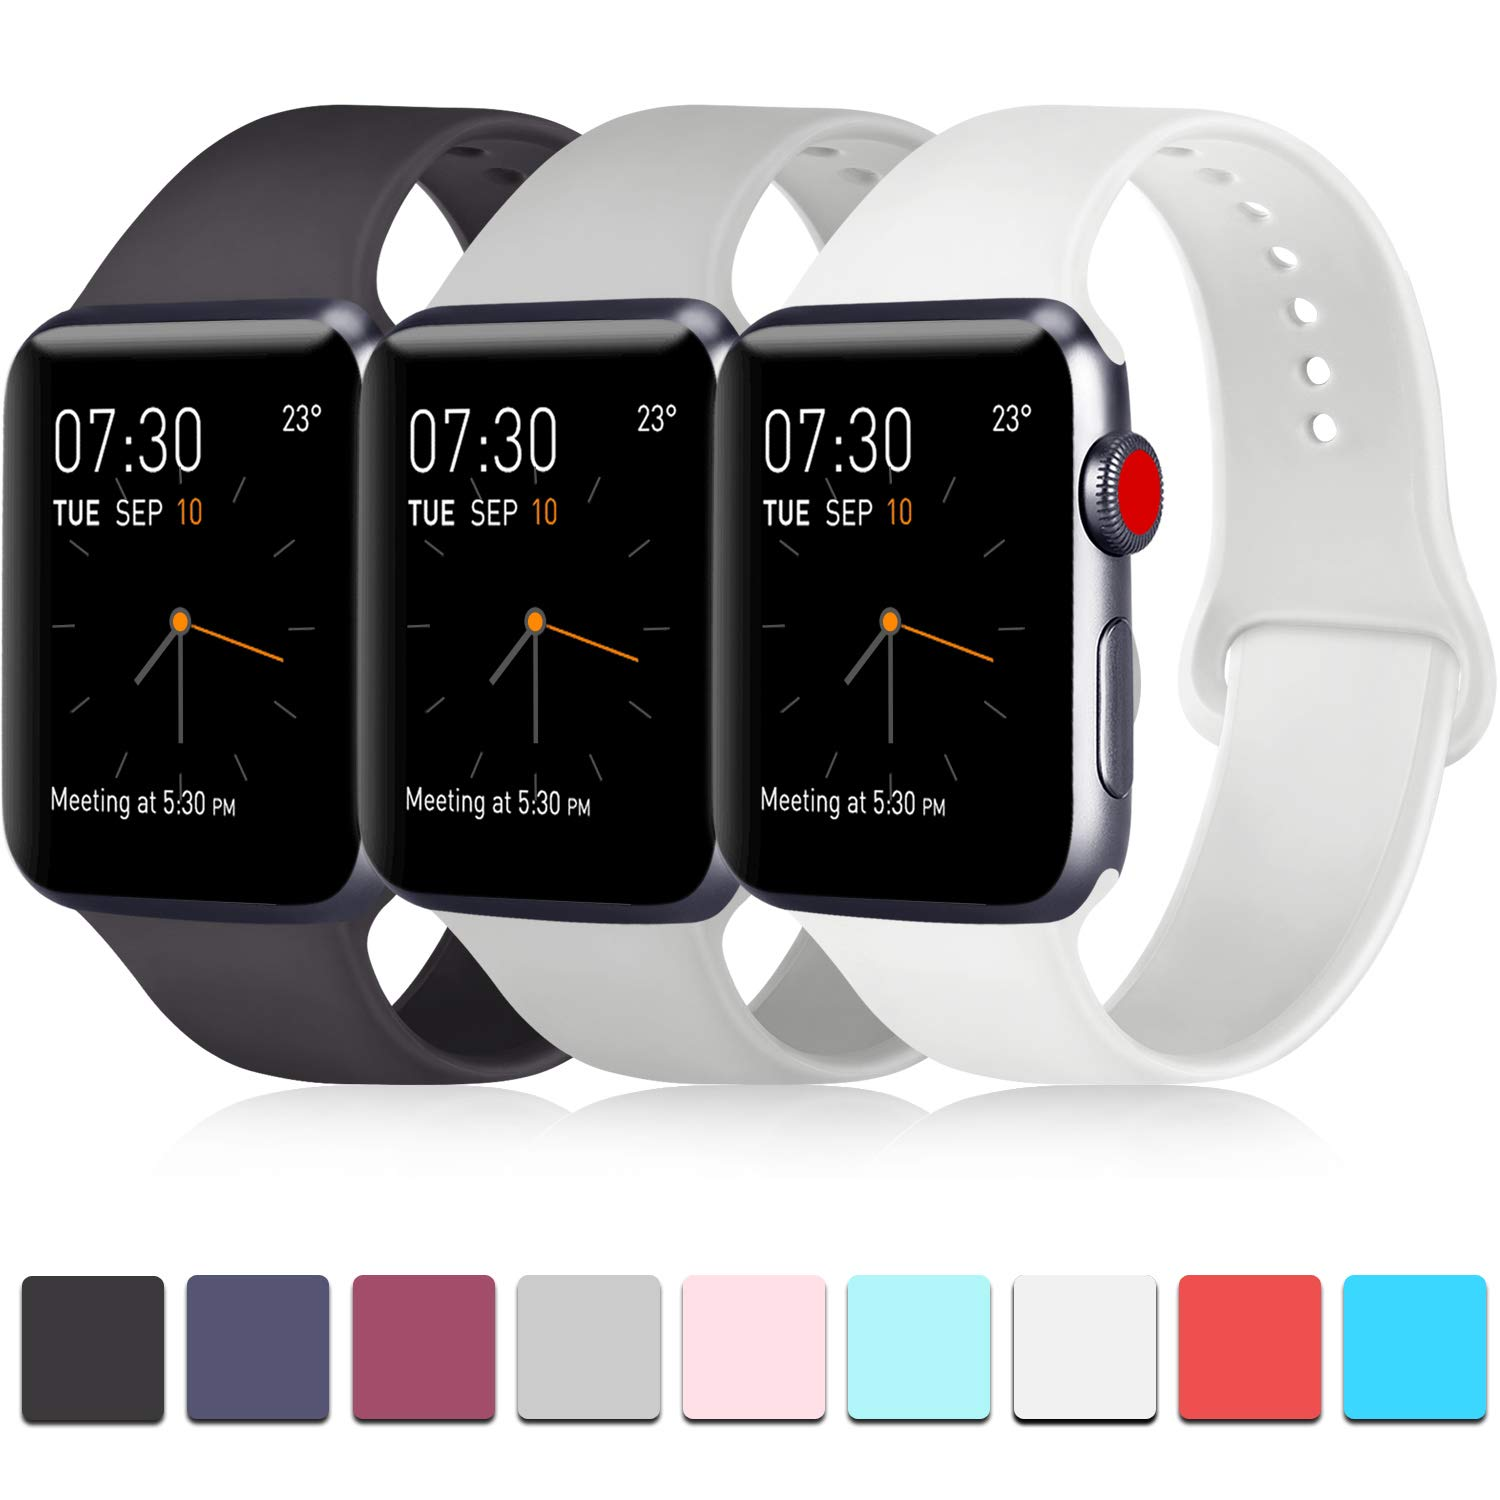 Pack 3 Compatible with Apple iWatch Bands 44mm Series 4, Soft Silicone Band Compatible iWatch Series 4, Series 3, Series 2, Series 1 (Black/Gray/White, 42mm/44mm-M/L) by ATUP